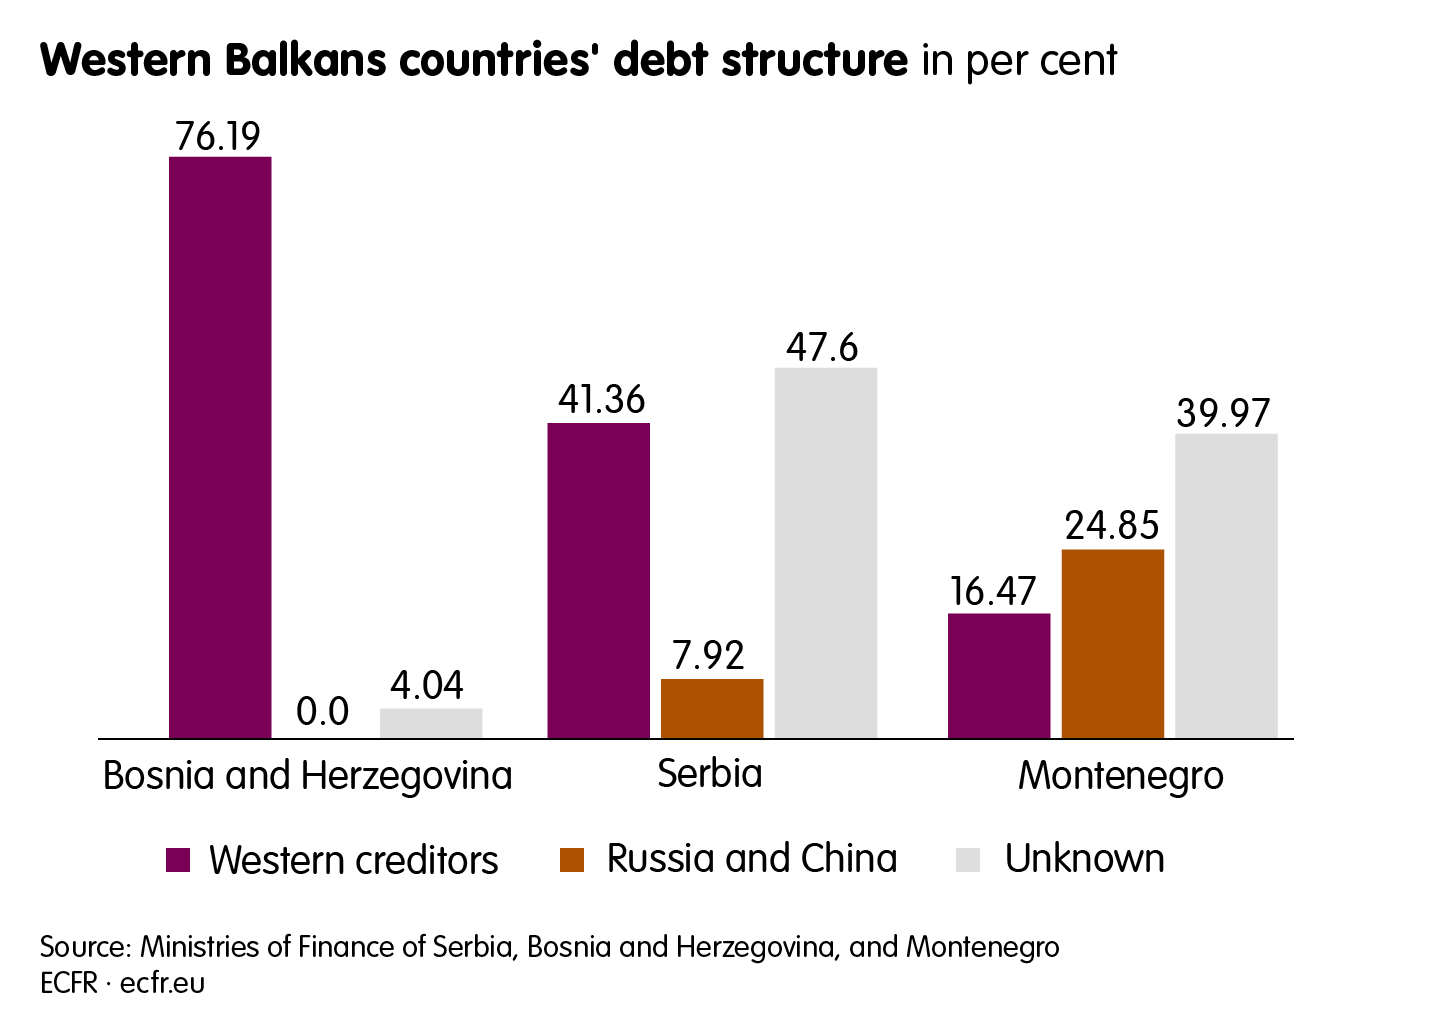 Western Balkans countries' debt structure in per cent